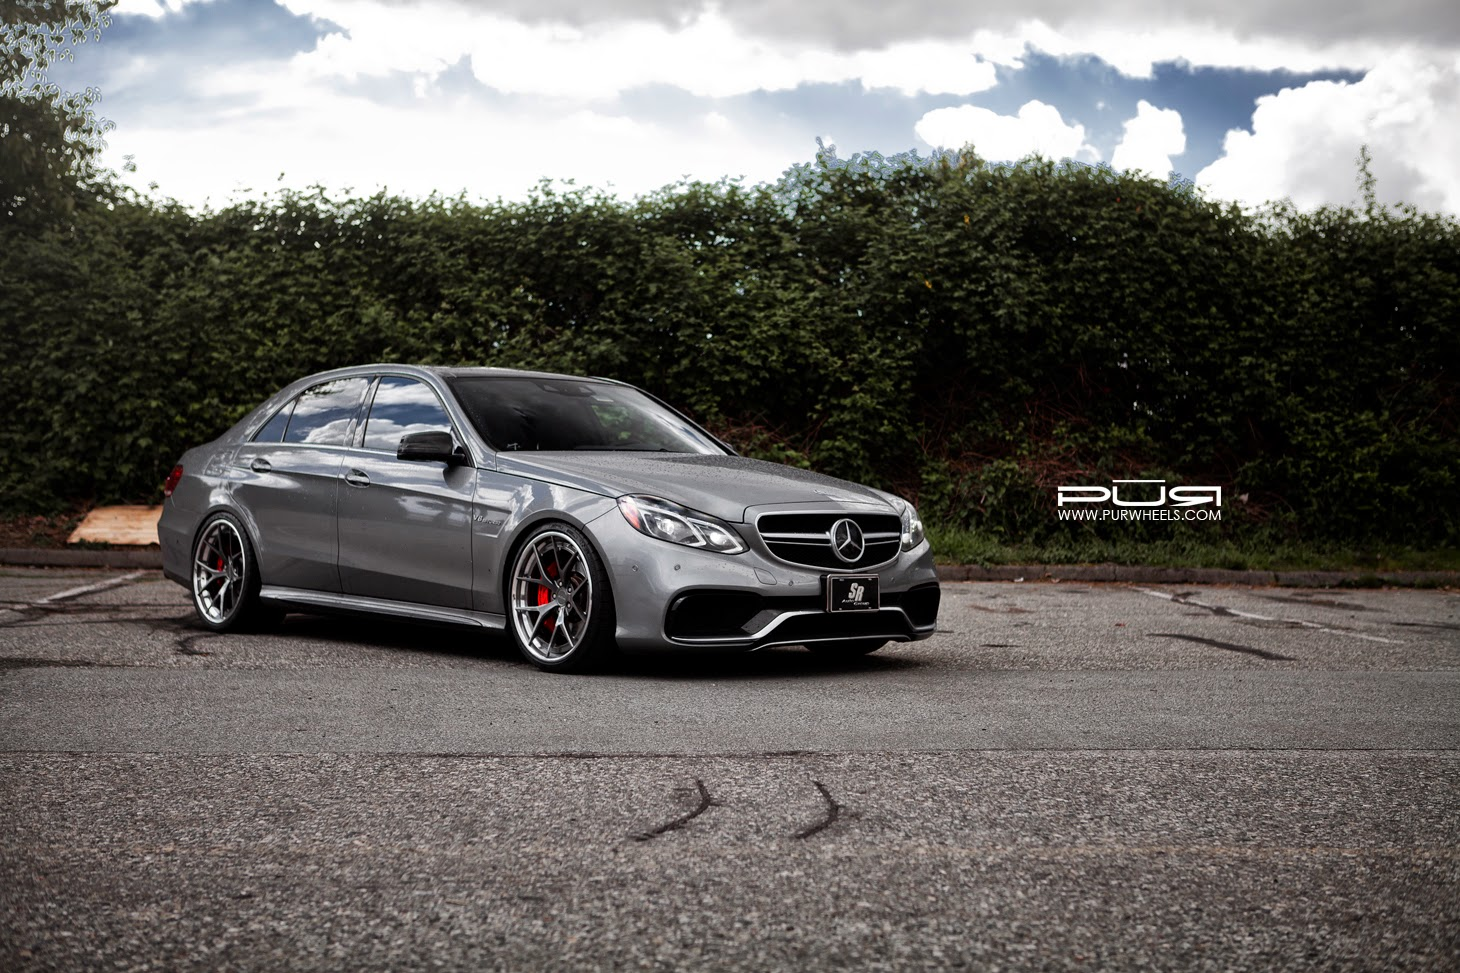 mercedes benz w212 e63 amg facelift on pur wheels benztuning. Black Bedroom Furniture Sets. Home Design Ideas